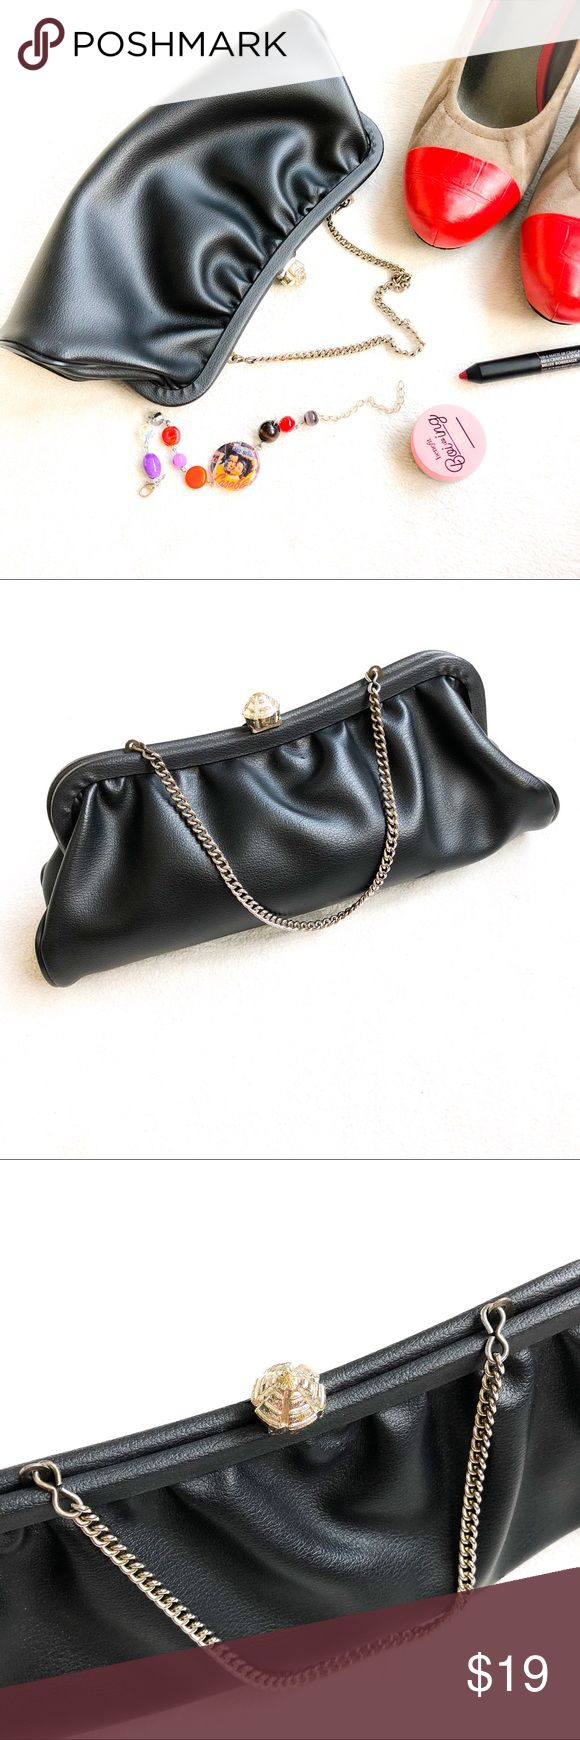 Vintage Leather Evening Bag Vintage Evening Bag can be used as a Clutch or w/ Chain Strap Smooth Soft Black Leather Excellent Condition, one small scuff (see last photo) Vintage Bags Clutches & Wristlets